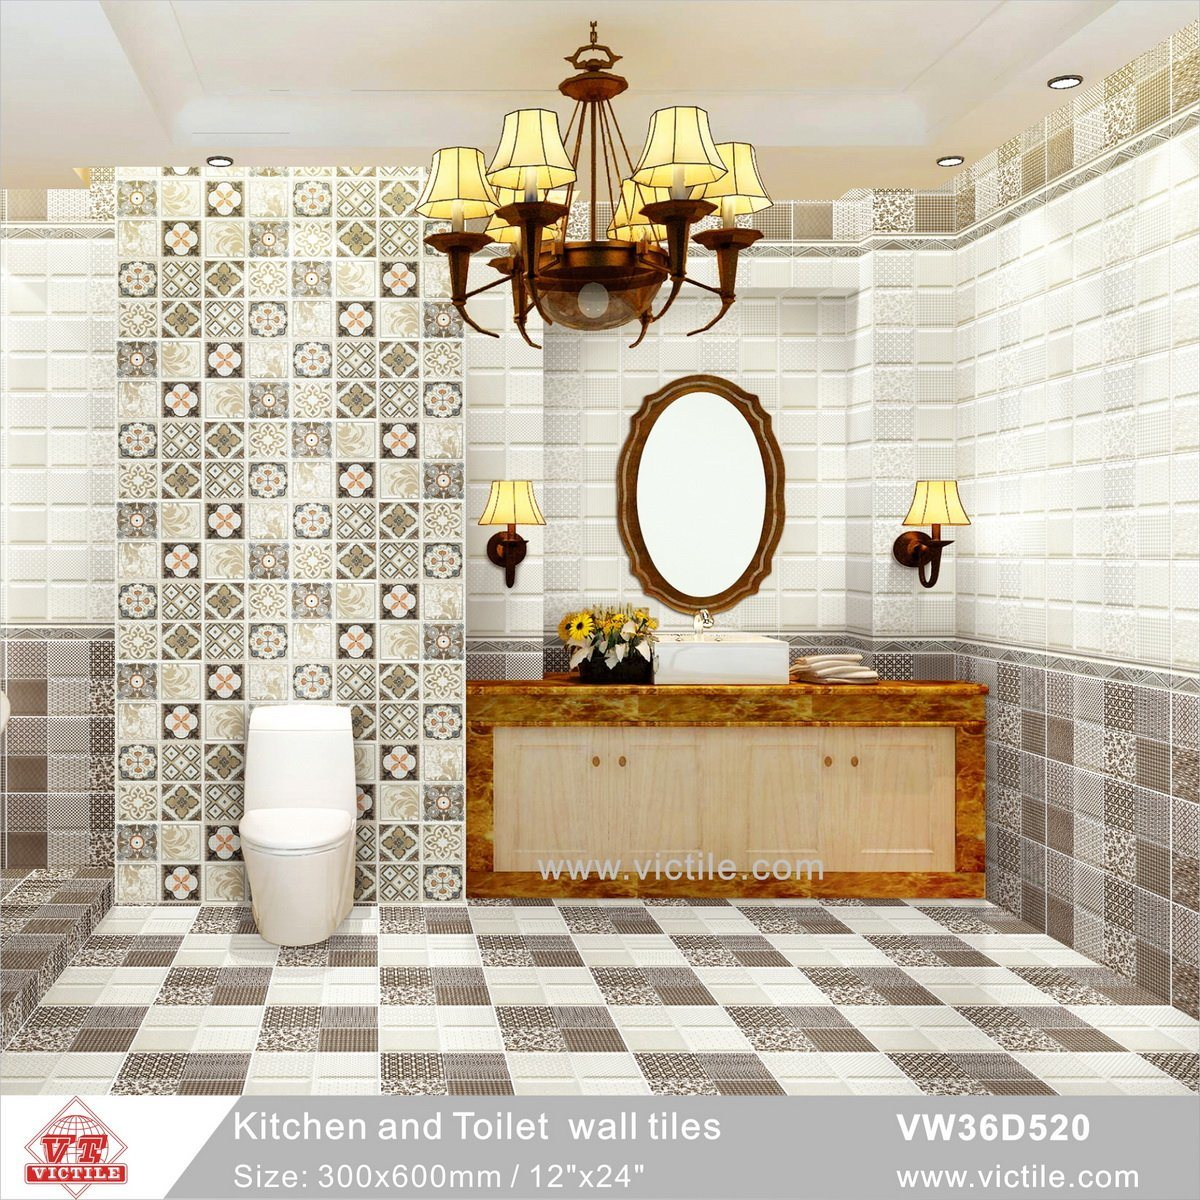 Hot Item New Arrival Decoration Ceramic Wall Kitchen Bathroom Pattern Tile Vw36d520 300x600mm 12 X24